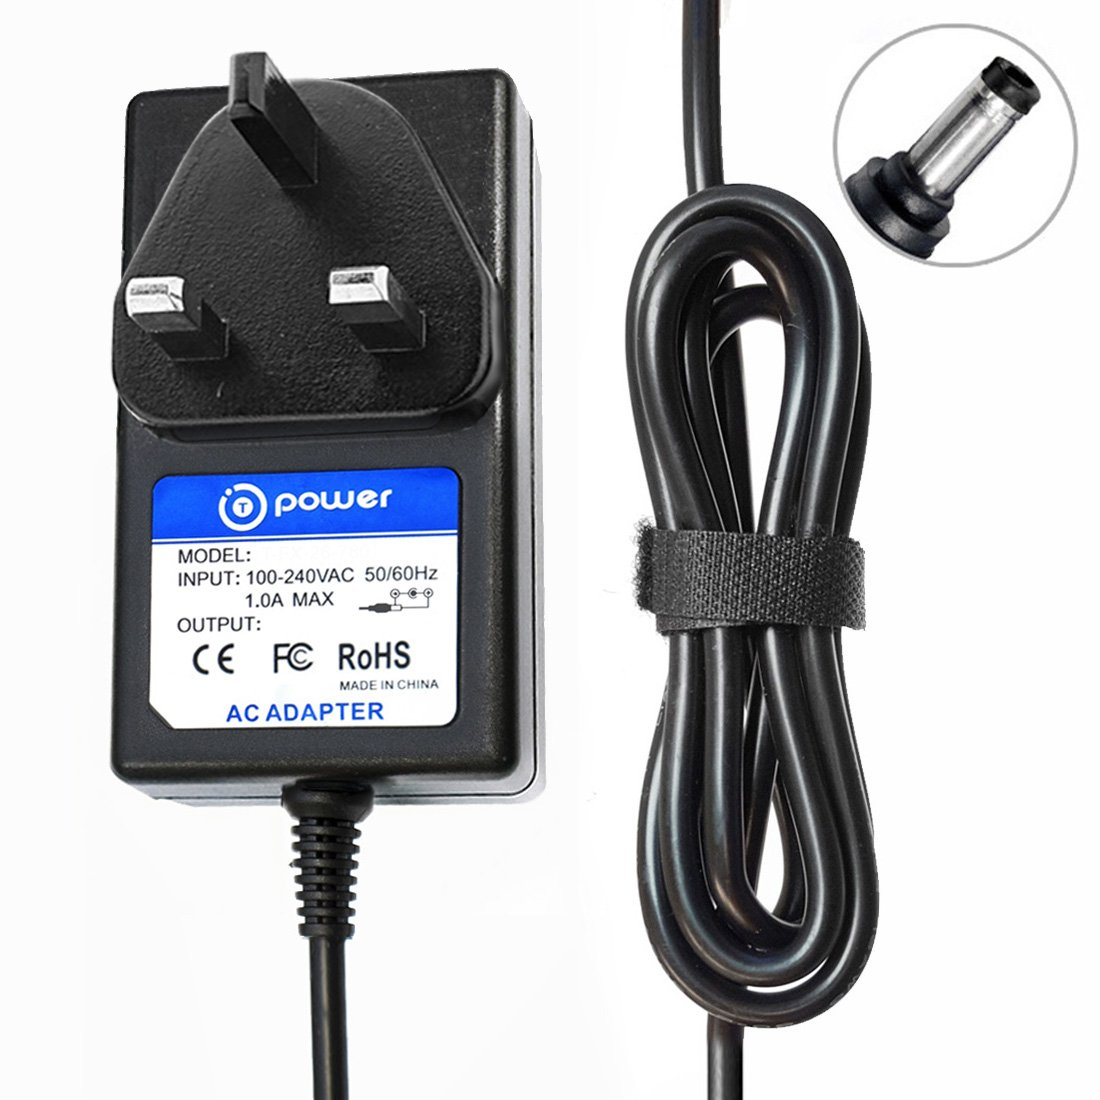 NEW AC Adapter For Cricut KSAH1800250T1M2 Cutting Machine Power Supply Charger